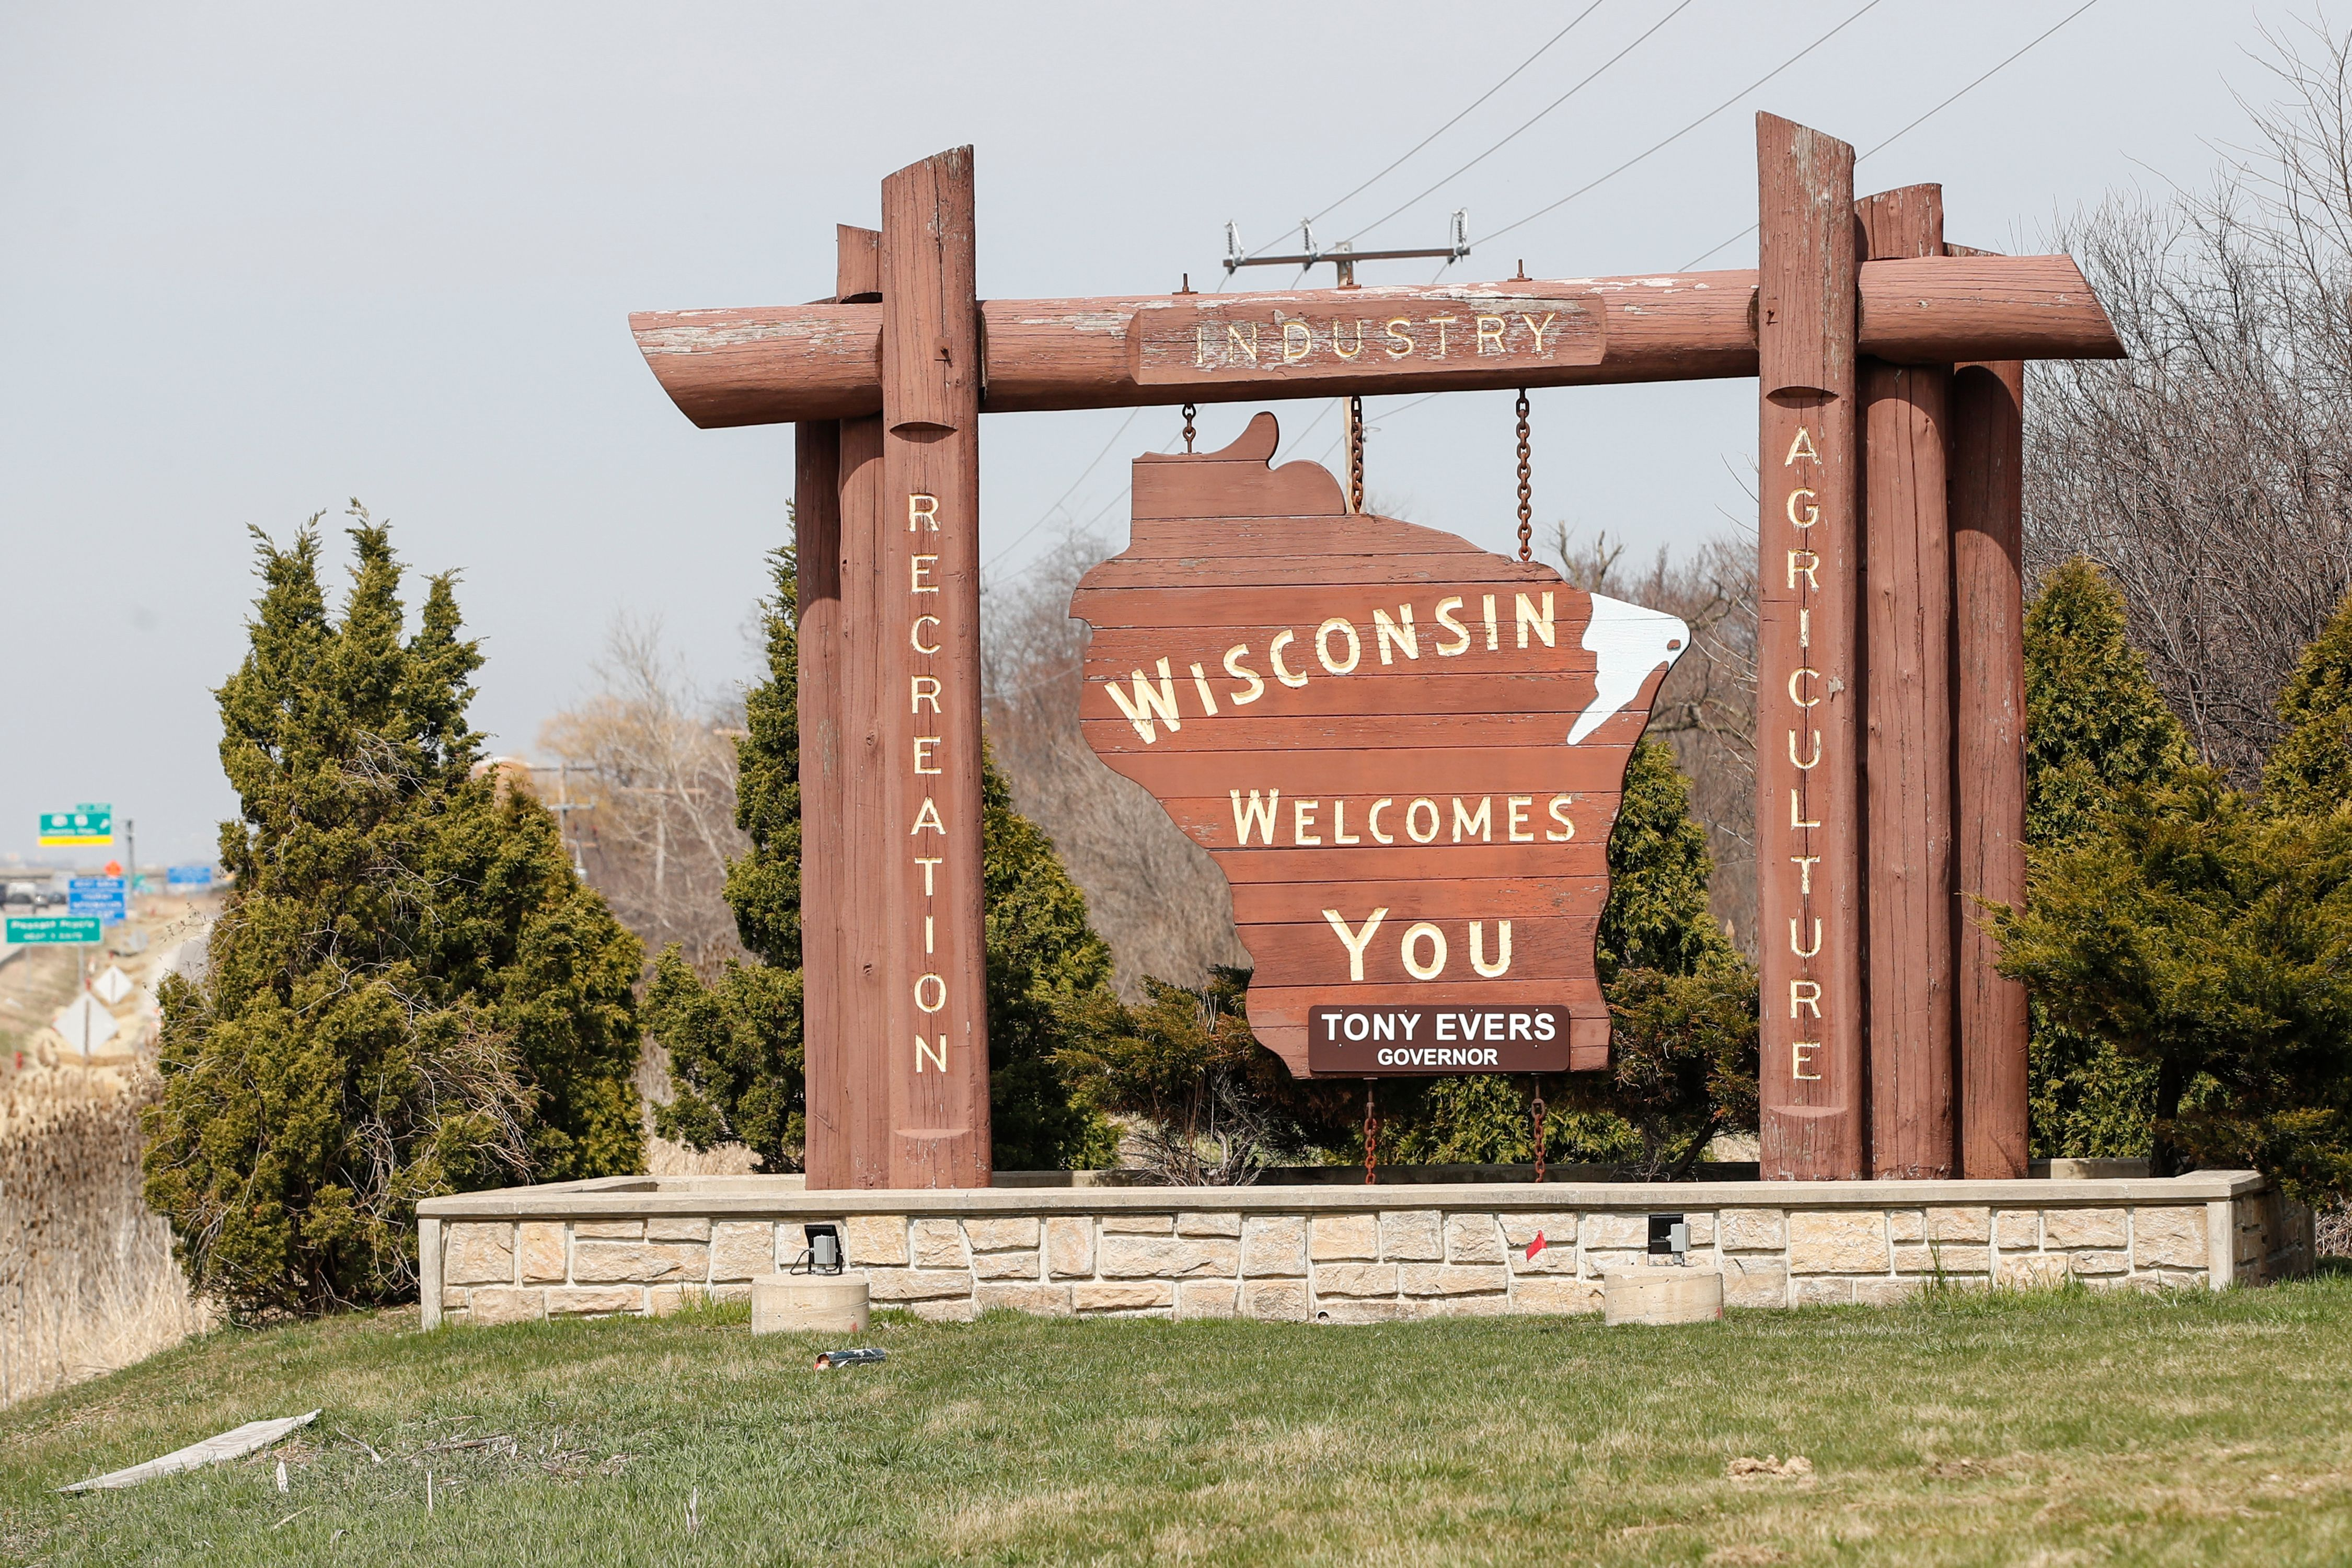 The Wisconsin Welcome Sign is seen in Pleasant Prairie, Wisconsin, on April 6, 2020.